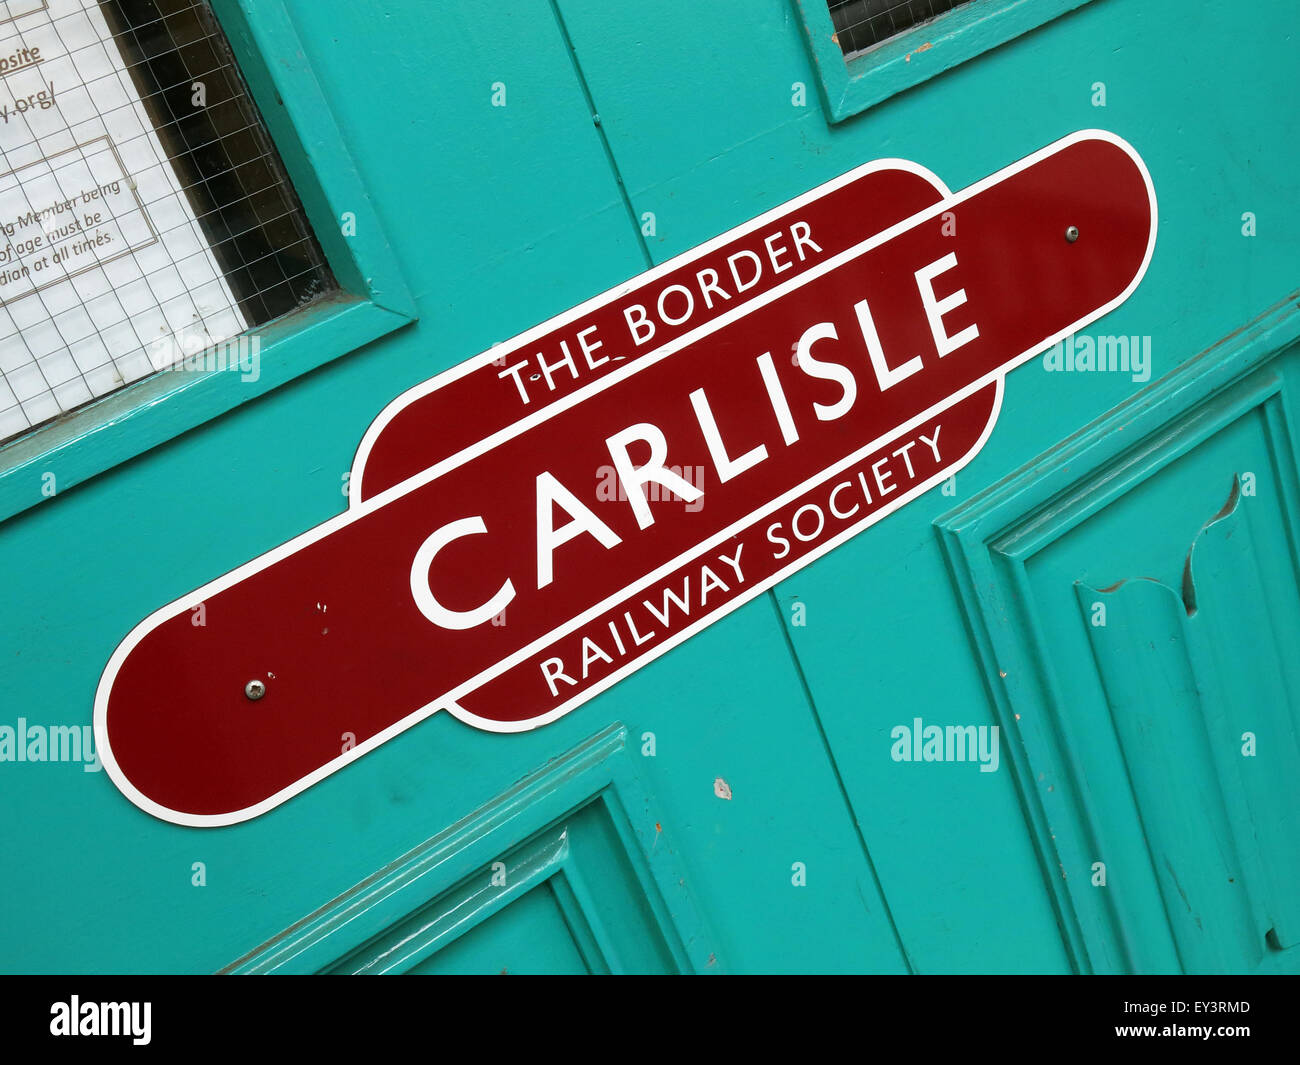 The Border Railway society, Carlisle, Cumbria, England, UK - Stock Image